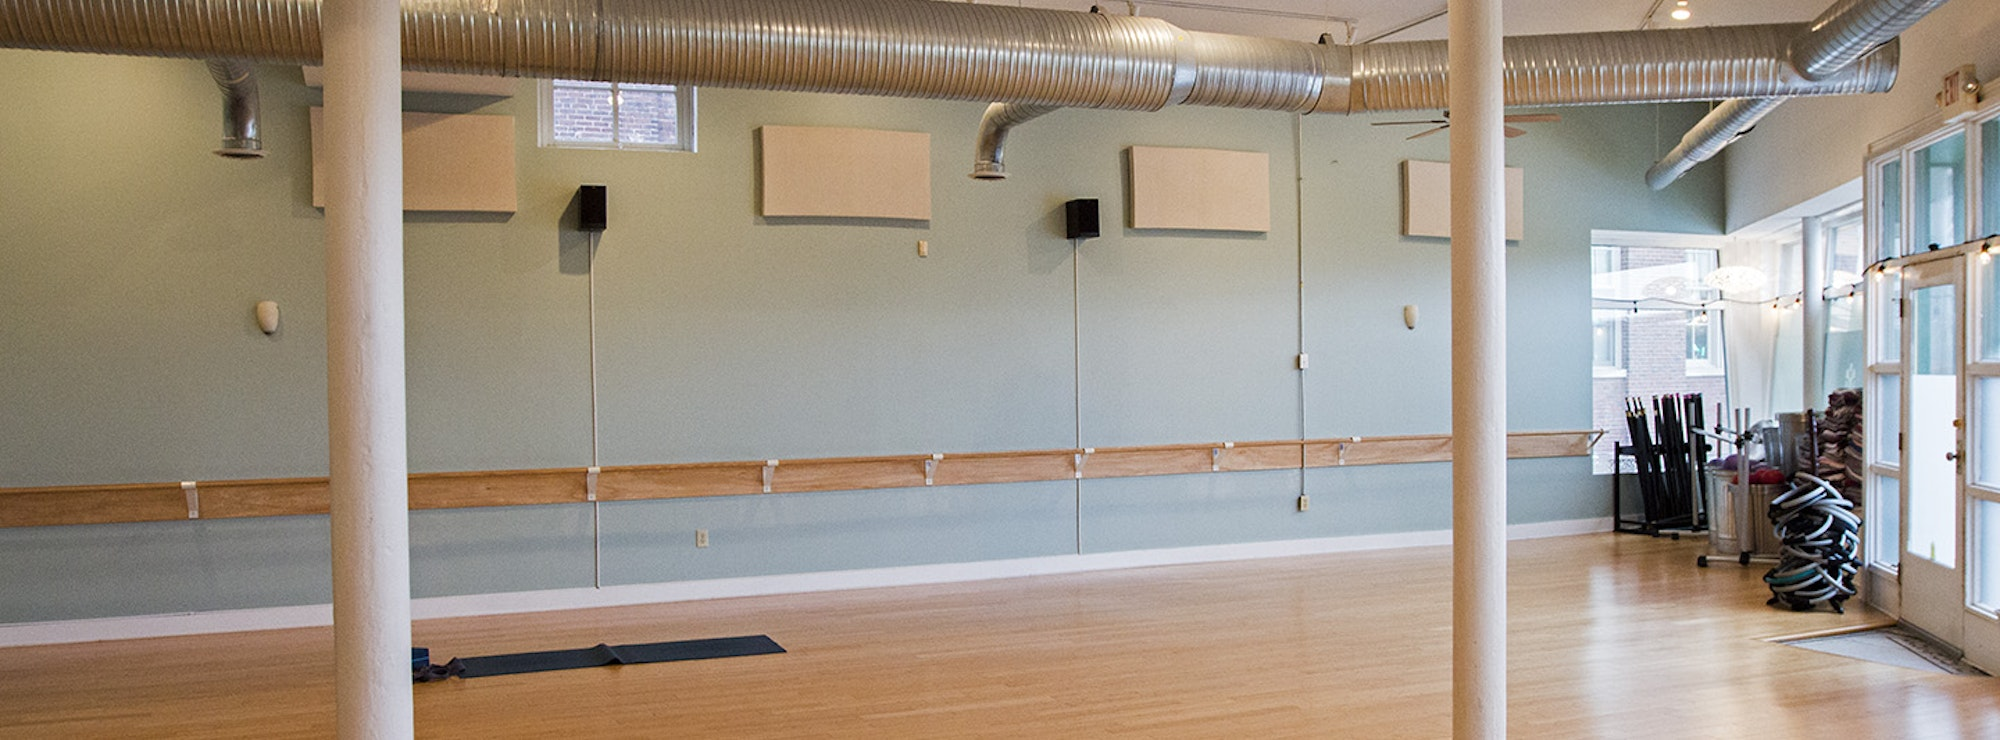 Klipsch speakers in a yoga studio